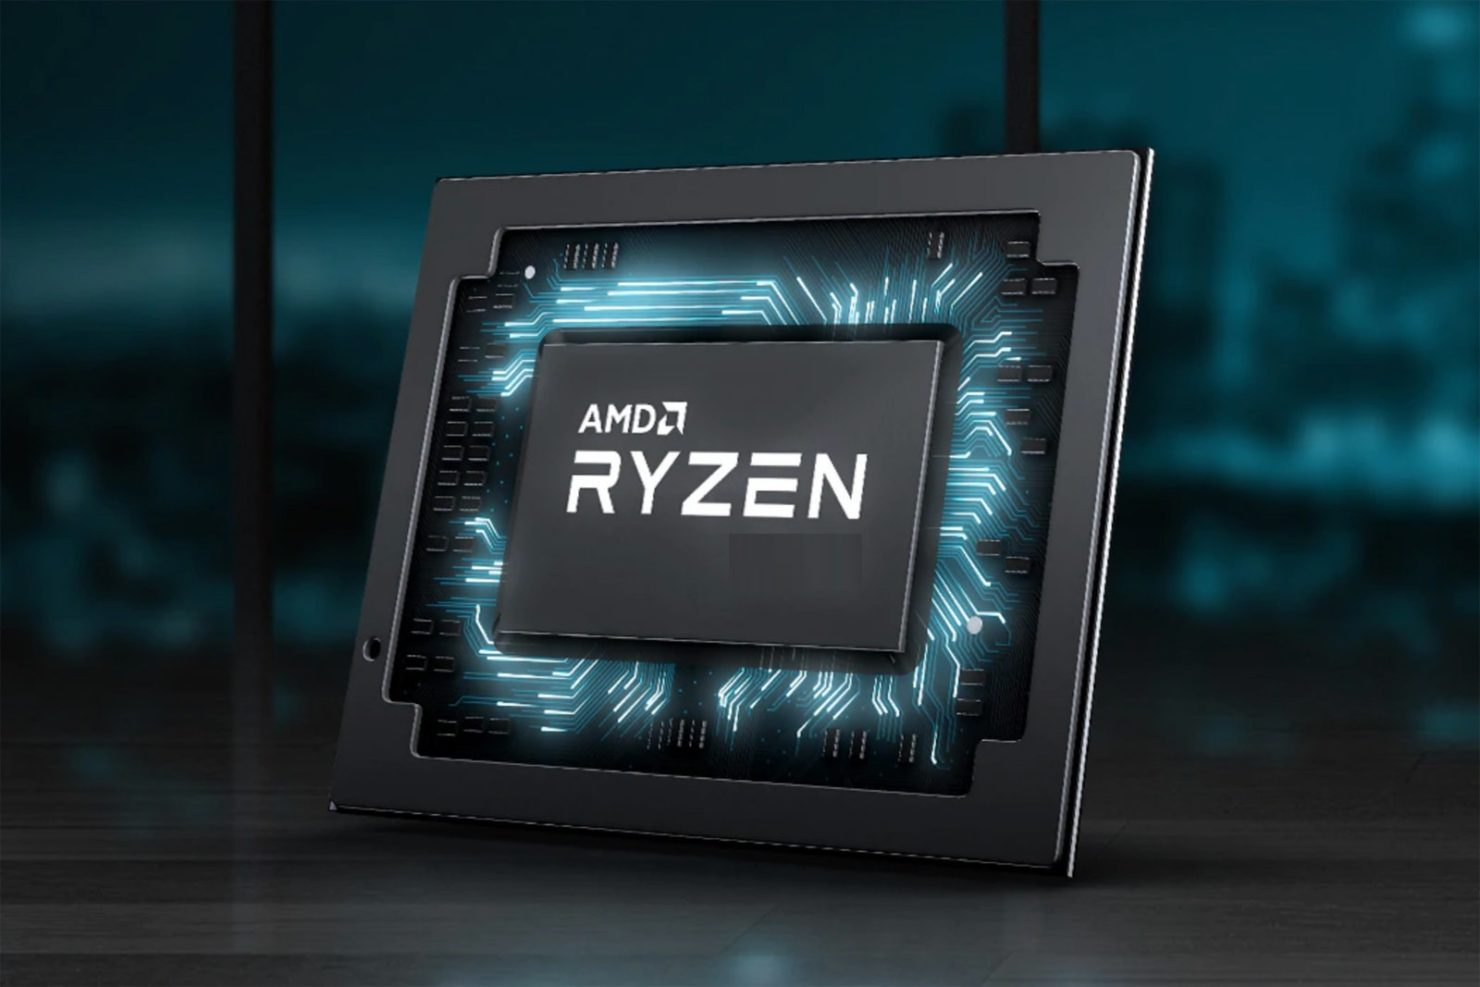 amd-big-&-little-processor-cores-show-up-in-latest-patent,-coming-to-next-gen-ryzen-cpus-&-apus